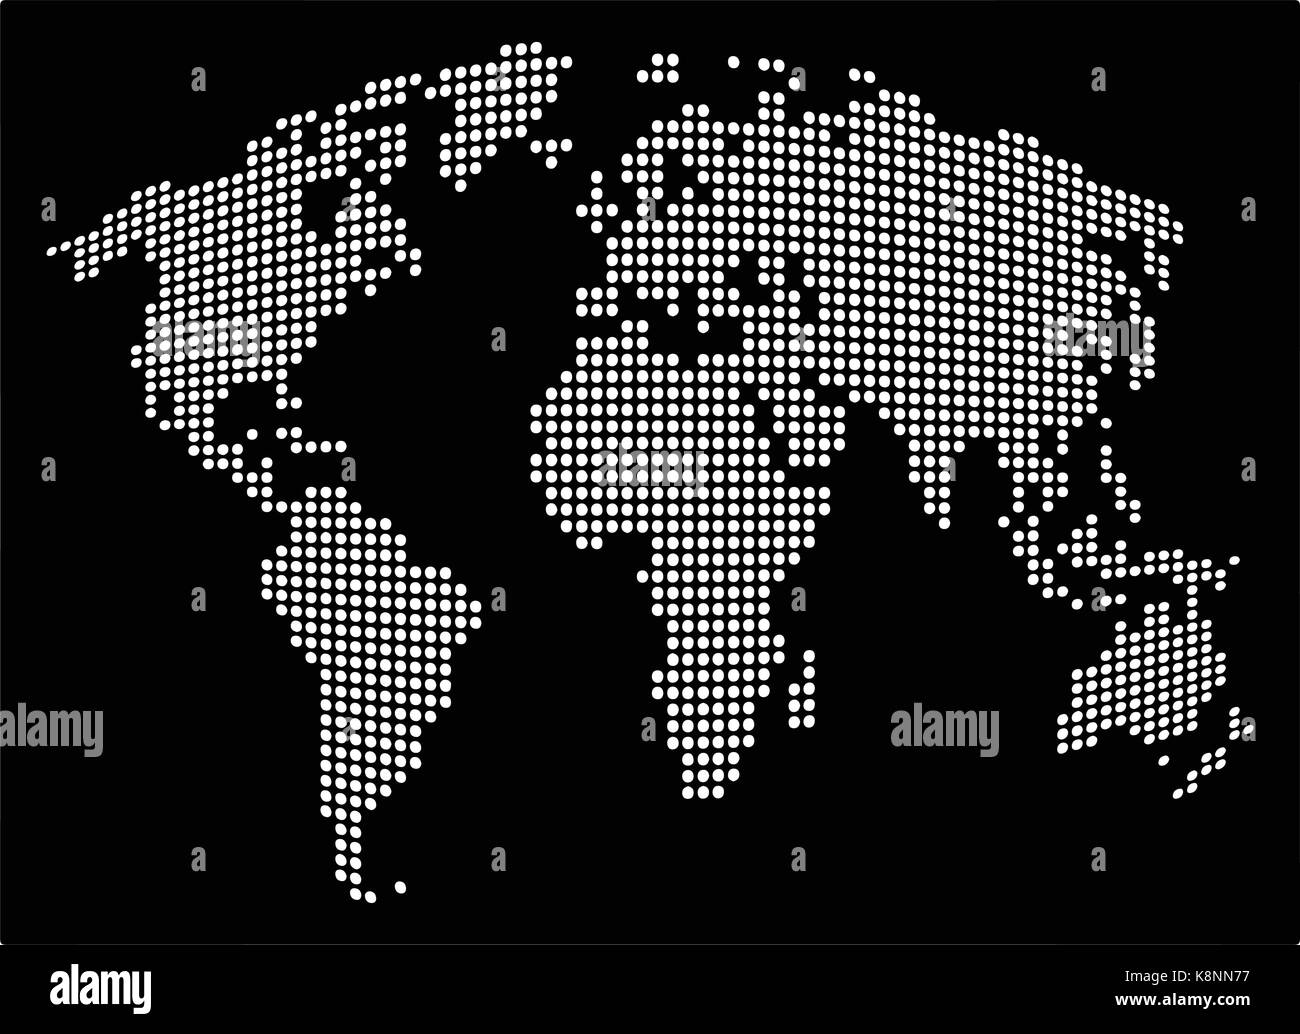 Dotted World Map Vector Vectors Stock Photos & Dotted World Map ...